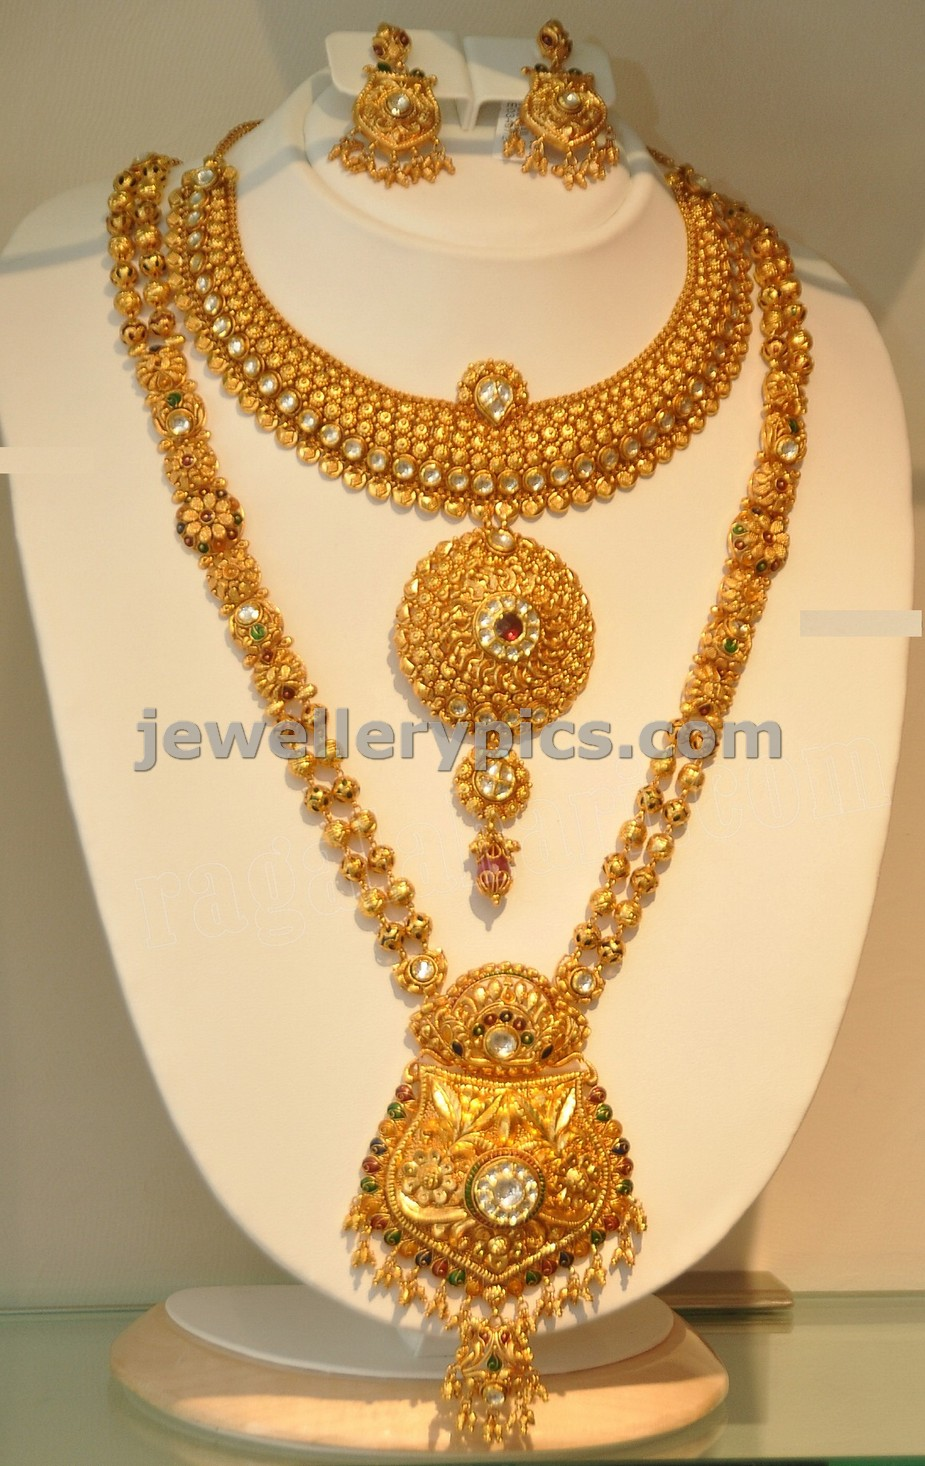 orra jewellery gold online buy earrings designs necklace set sets bridal a